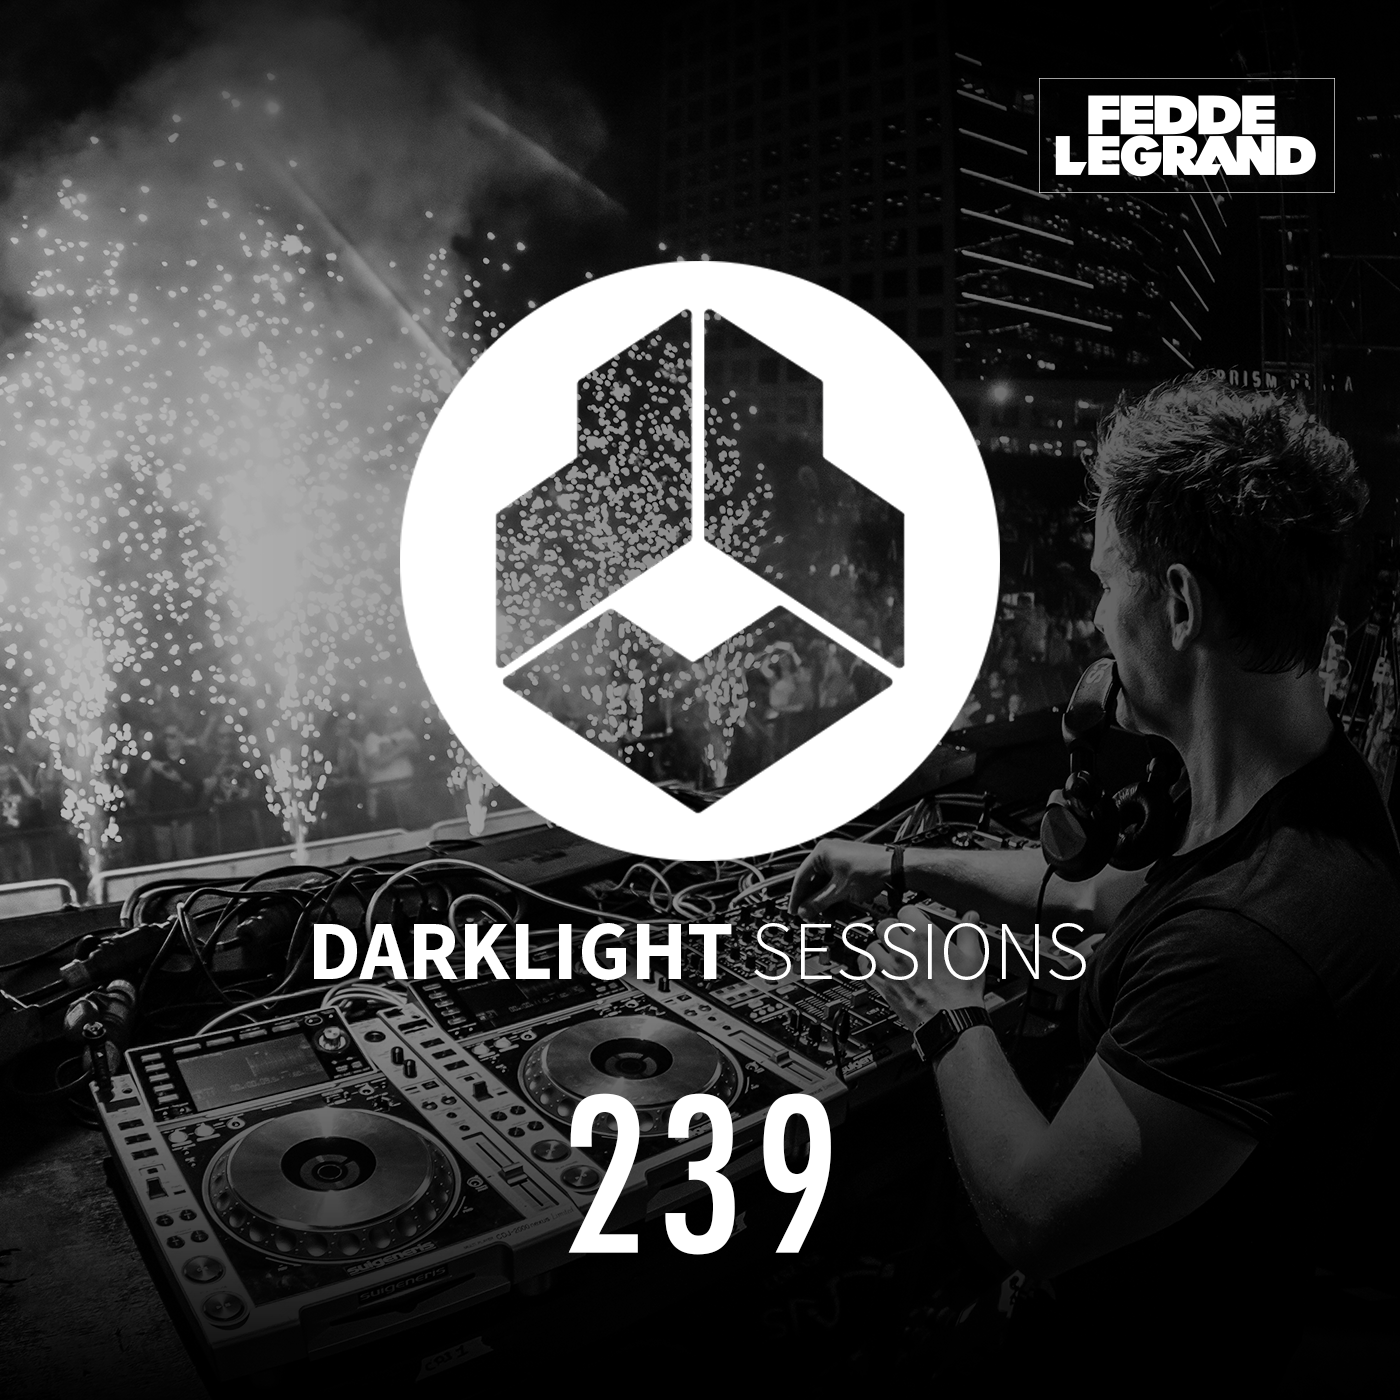 Darklight Sessions 239